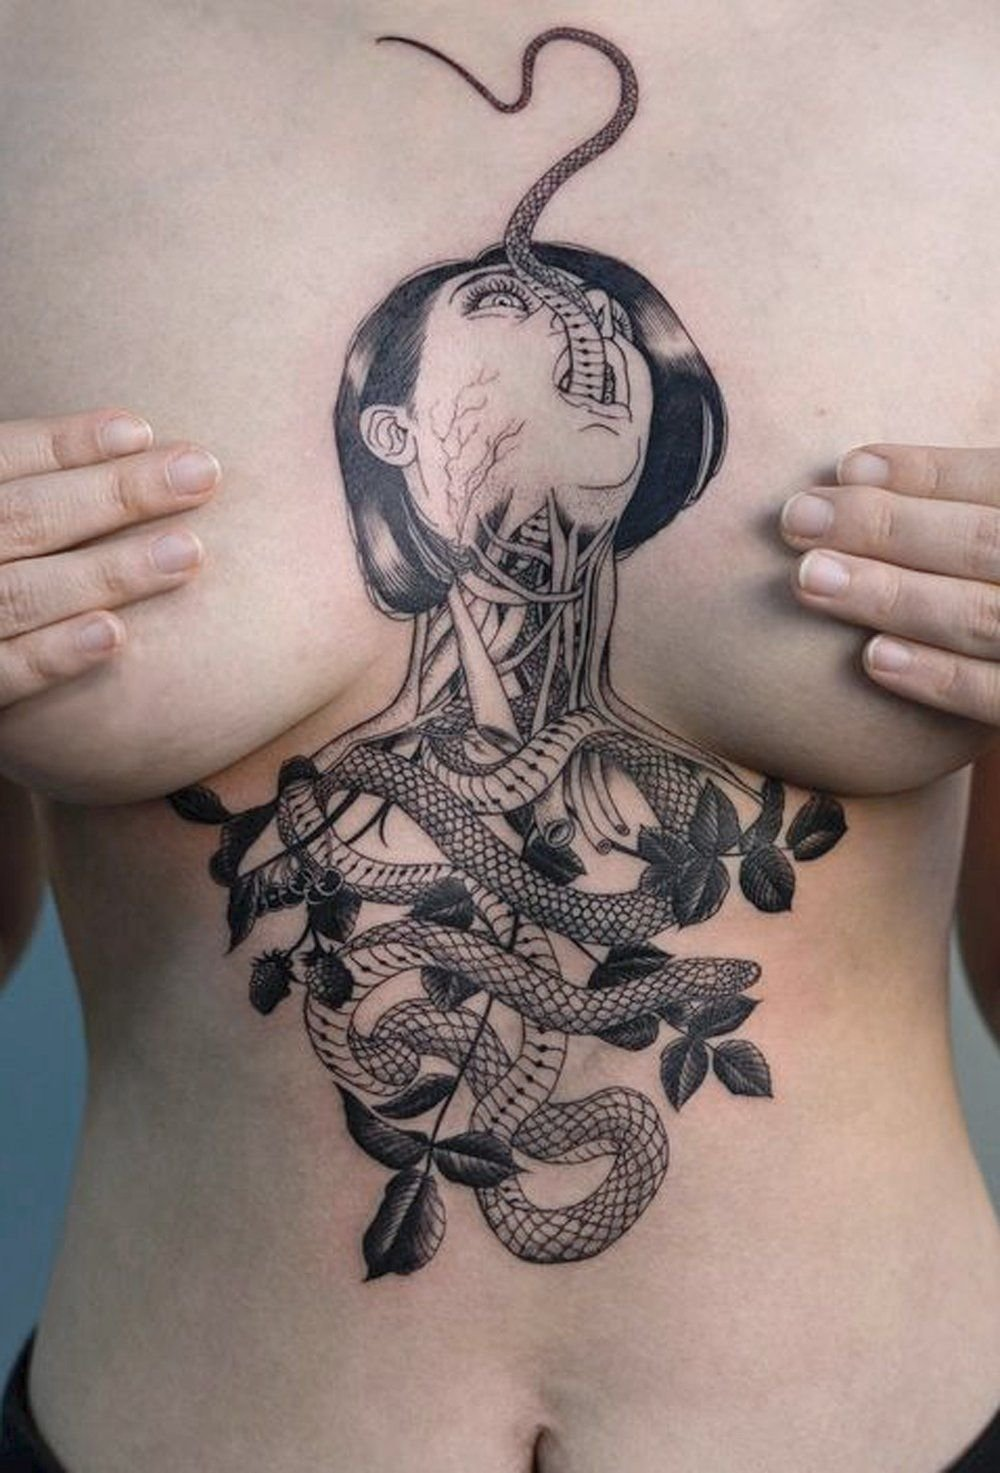 10 Great Cool Tattoo Ideas For Women unique cool medusa snake chest sternum tattoo ideas for women 2020